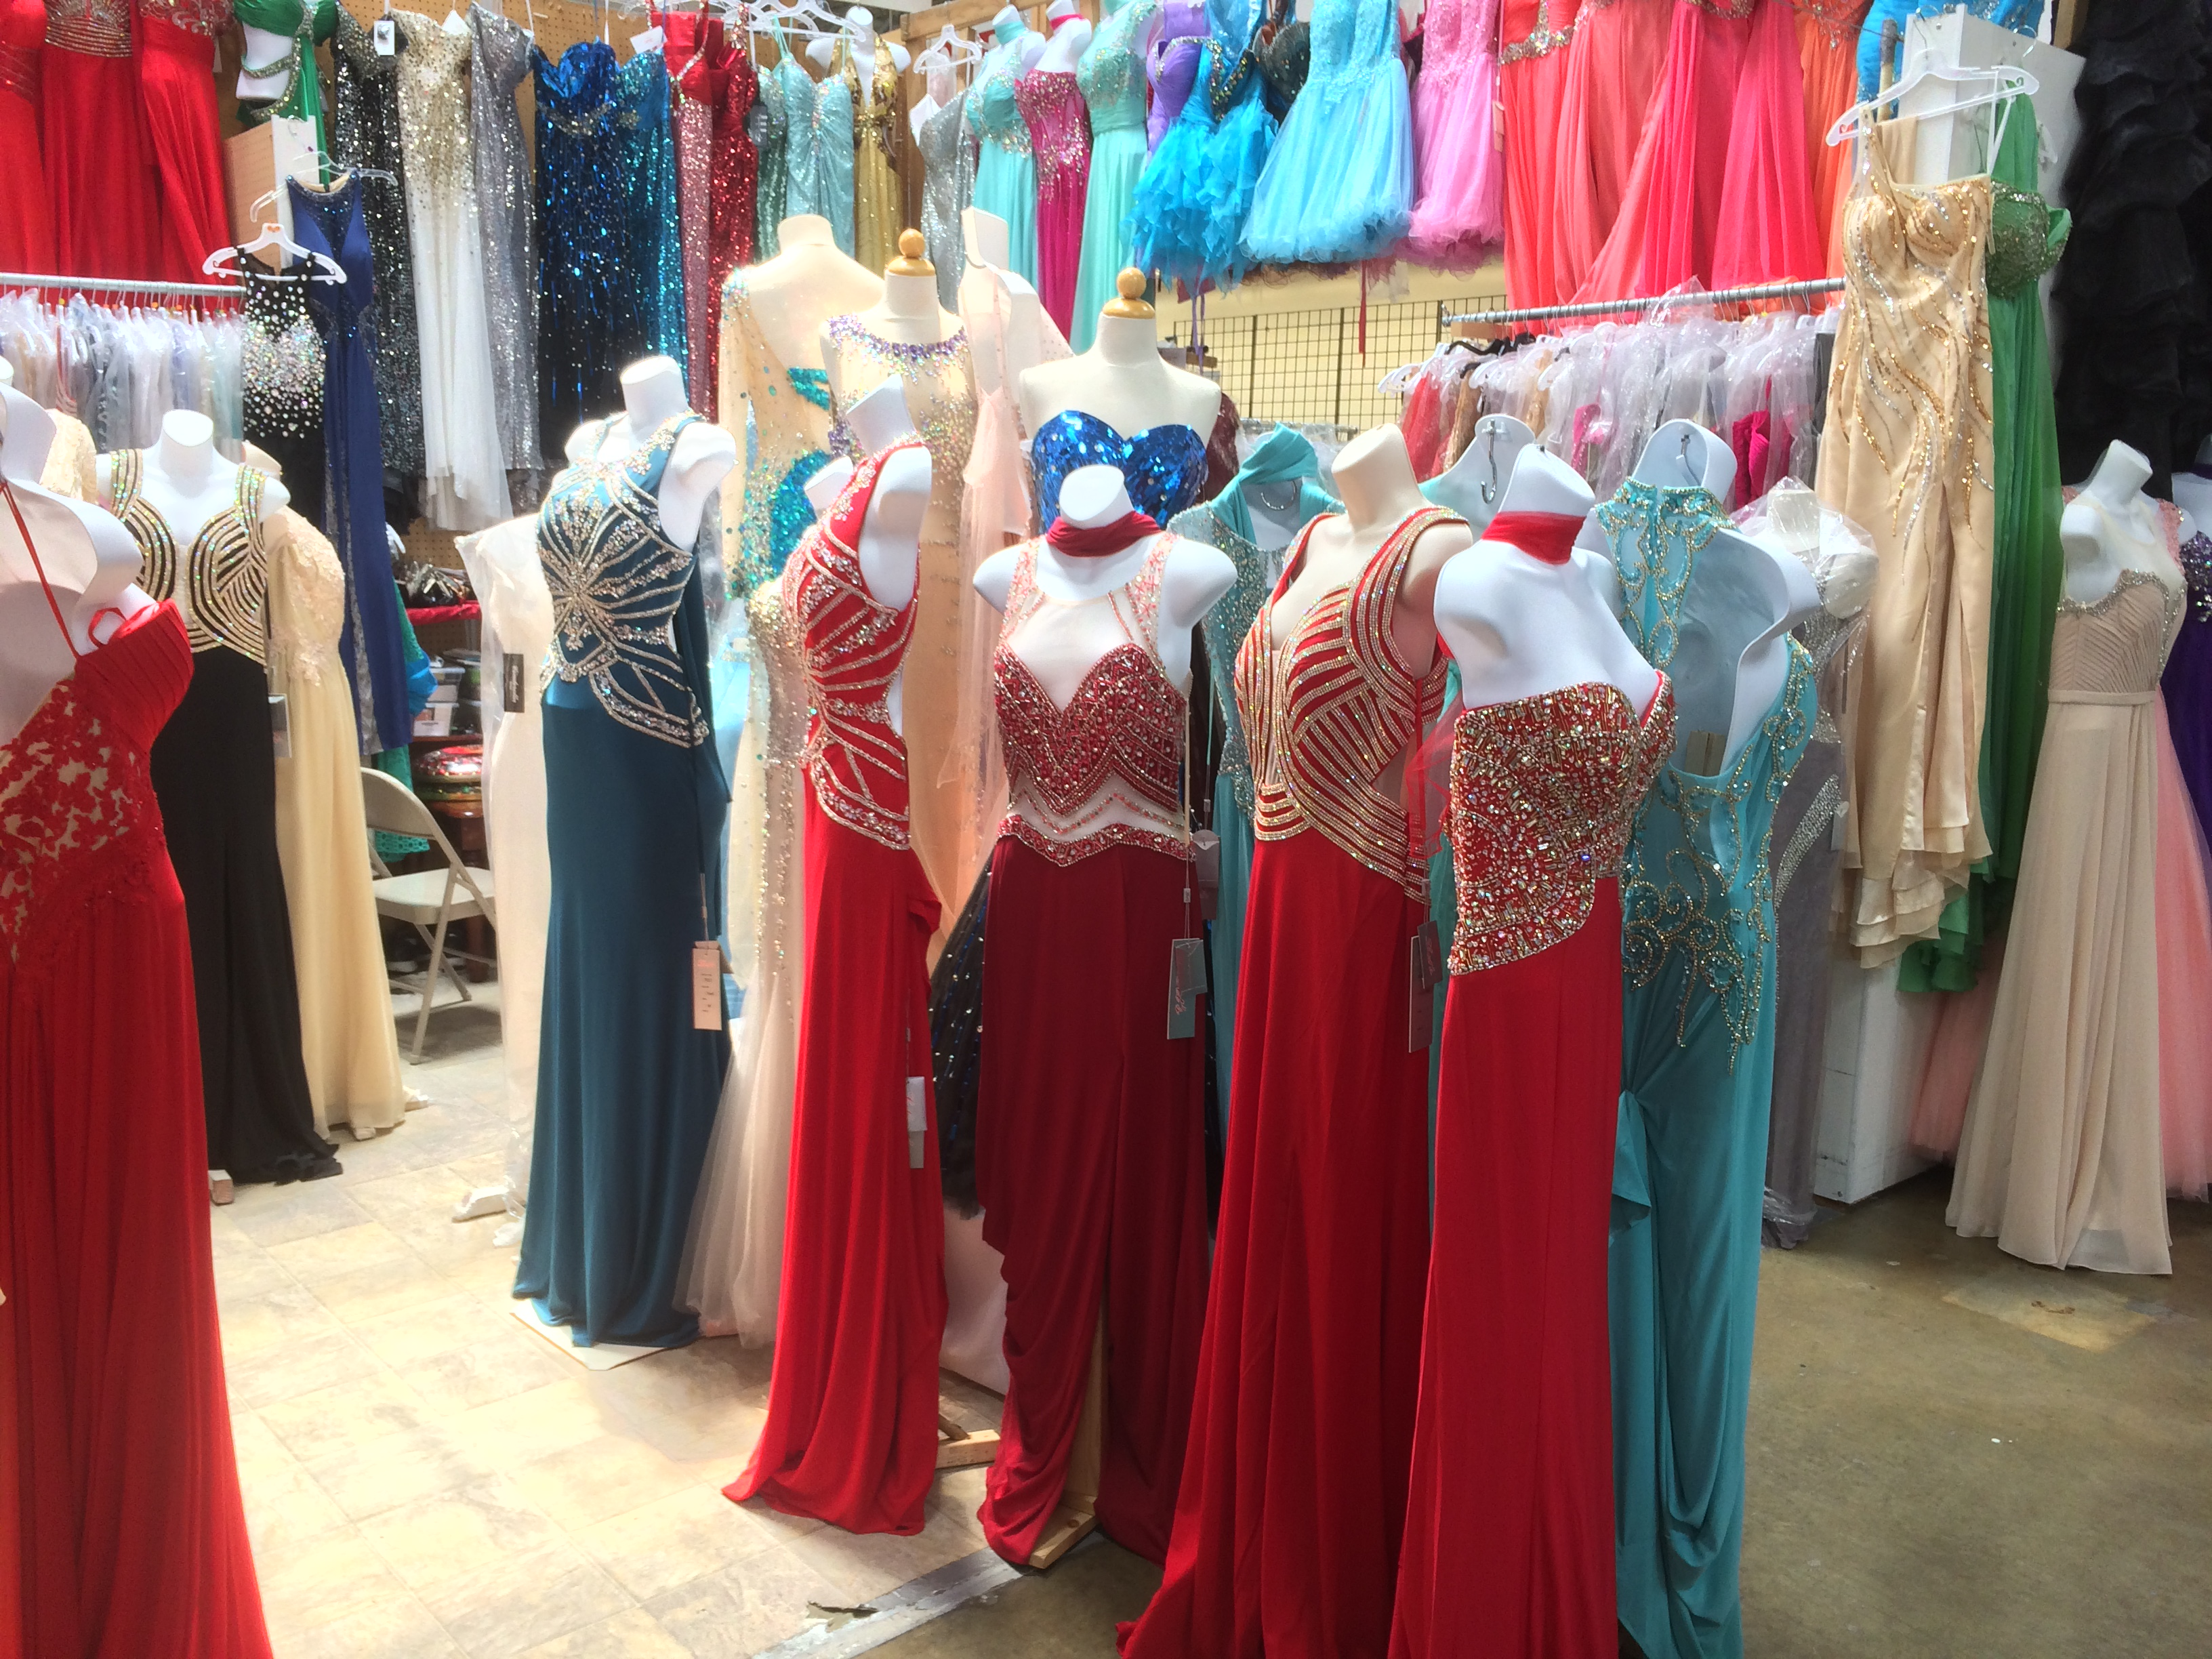 sophies-boutique-carries-full-line-of-quinceanera-dresses-evening ...